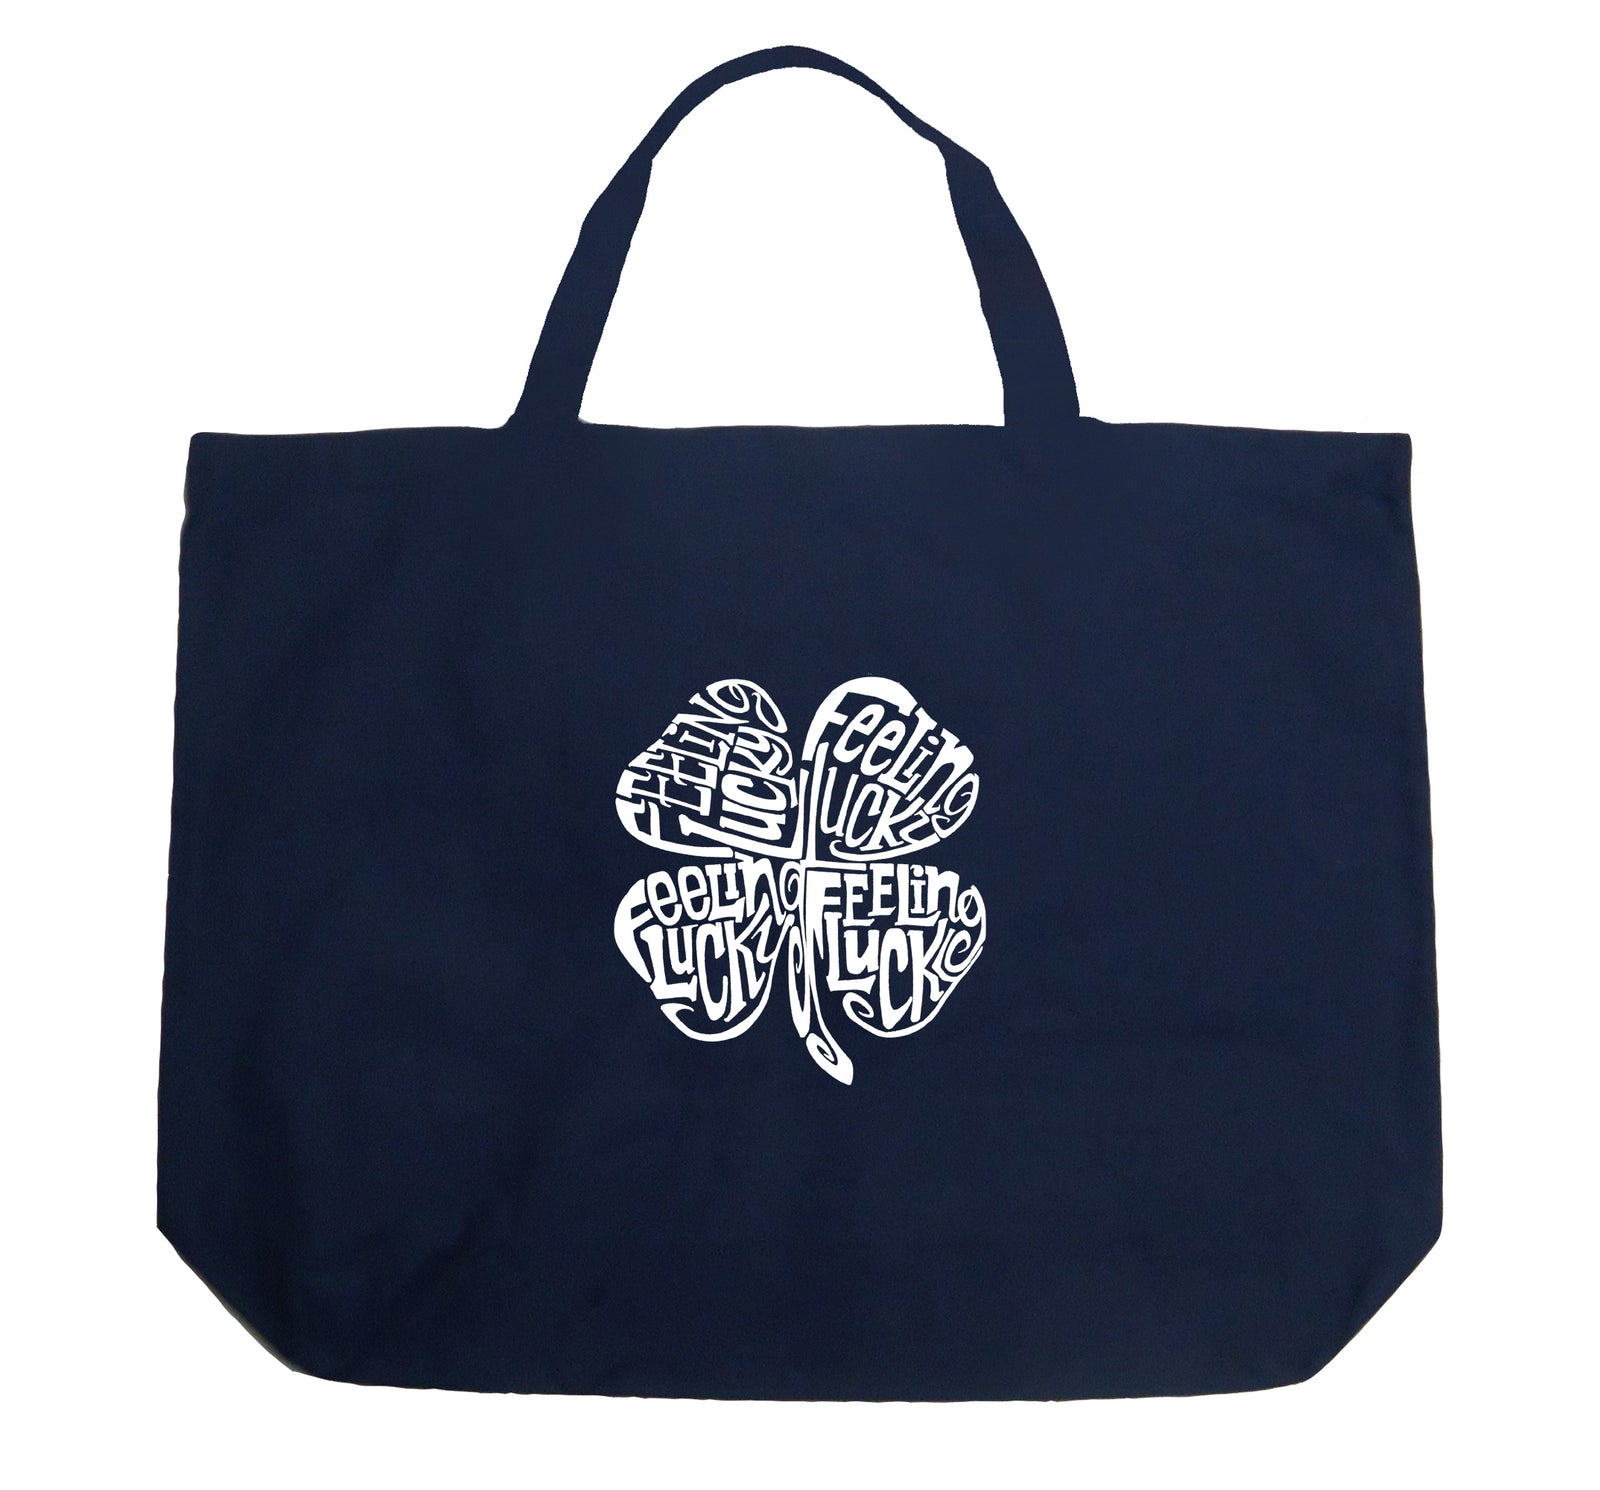 Large Word Art Tote Bag - Feeling Lucky